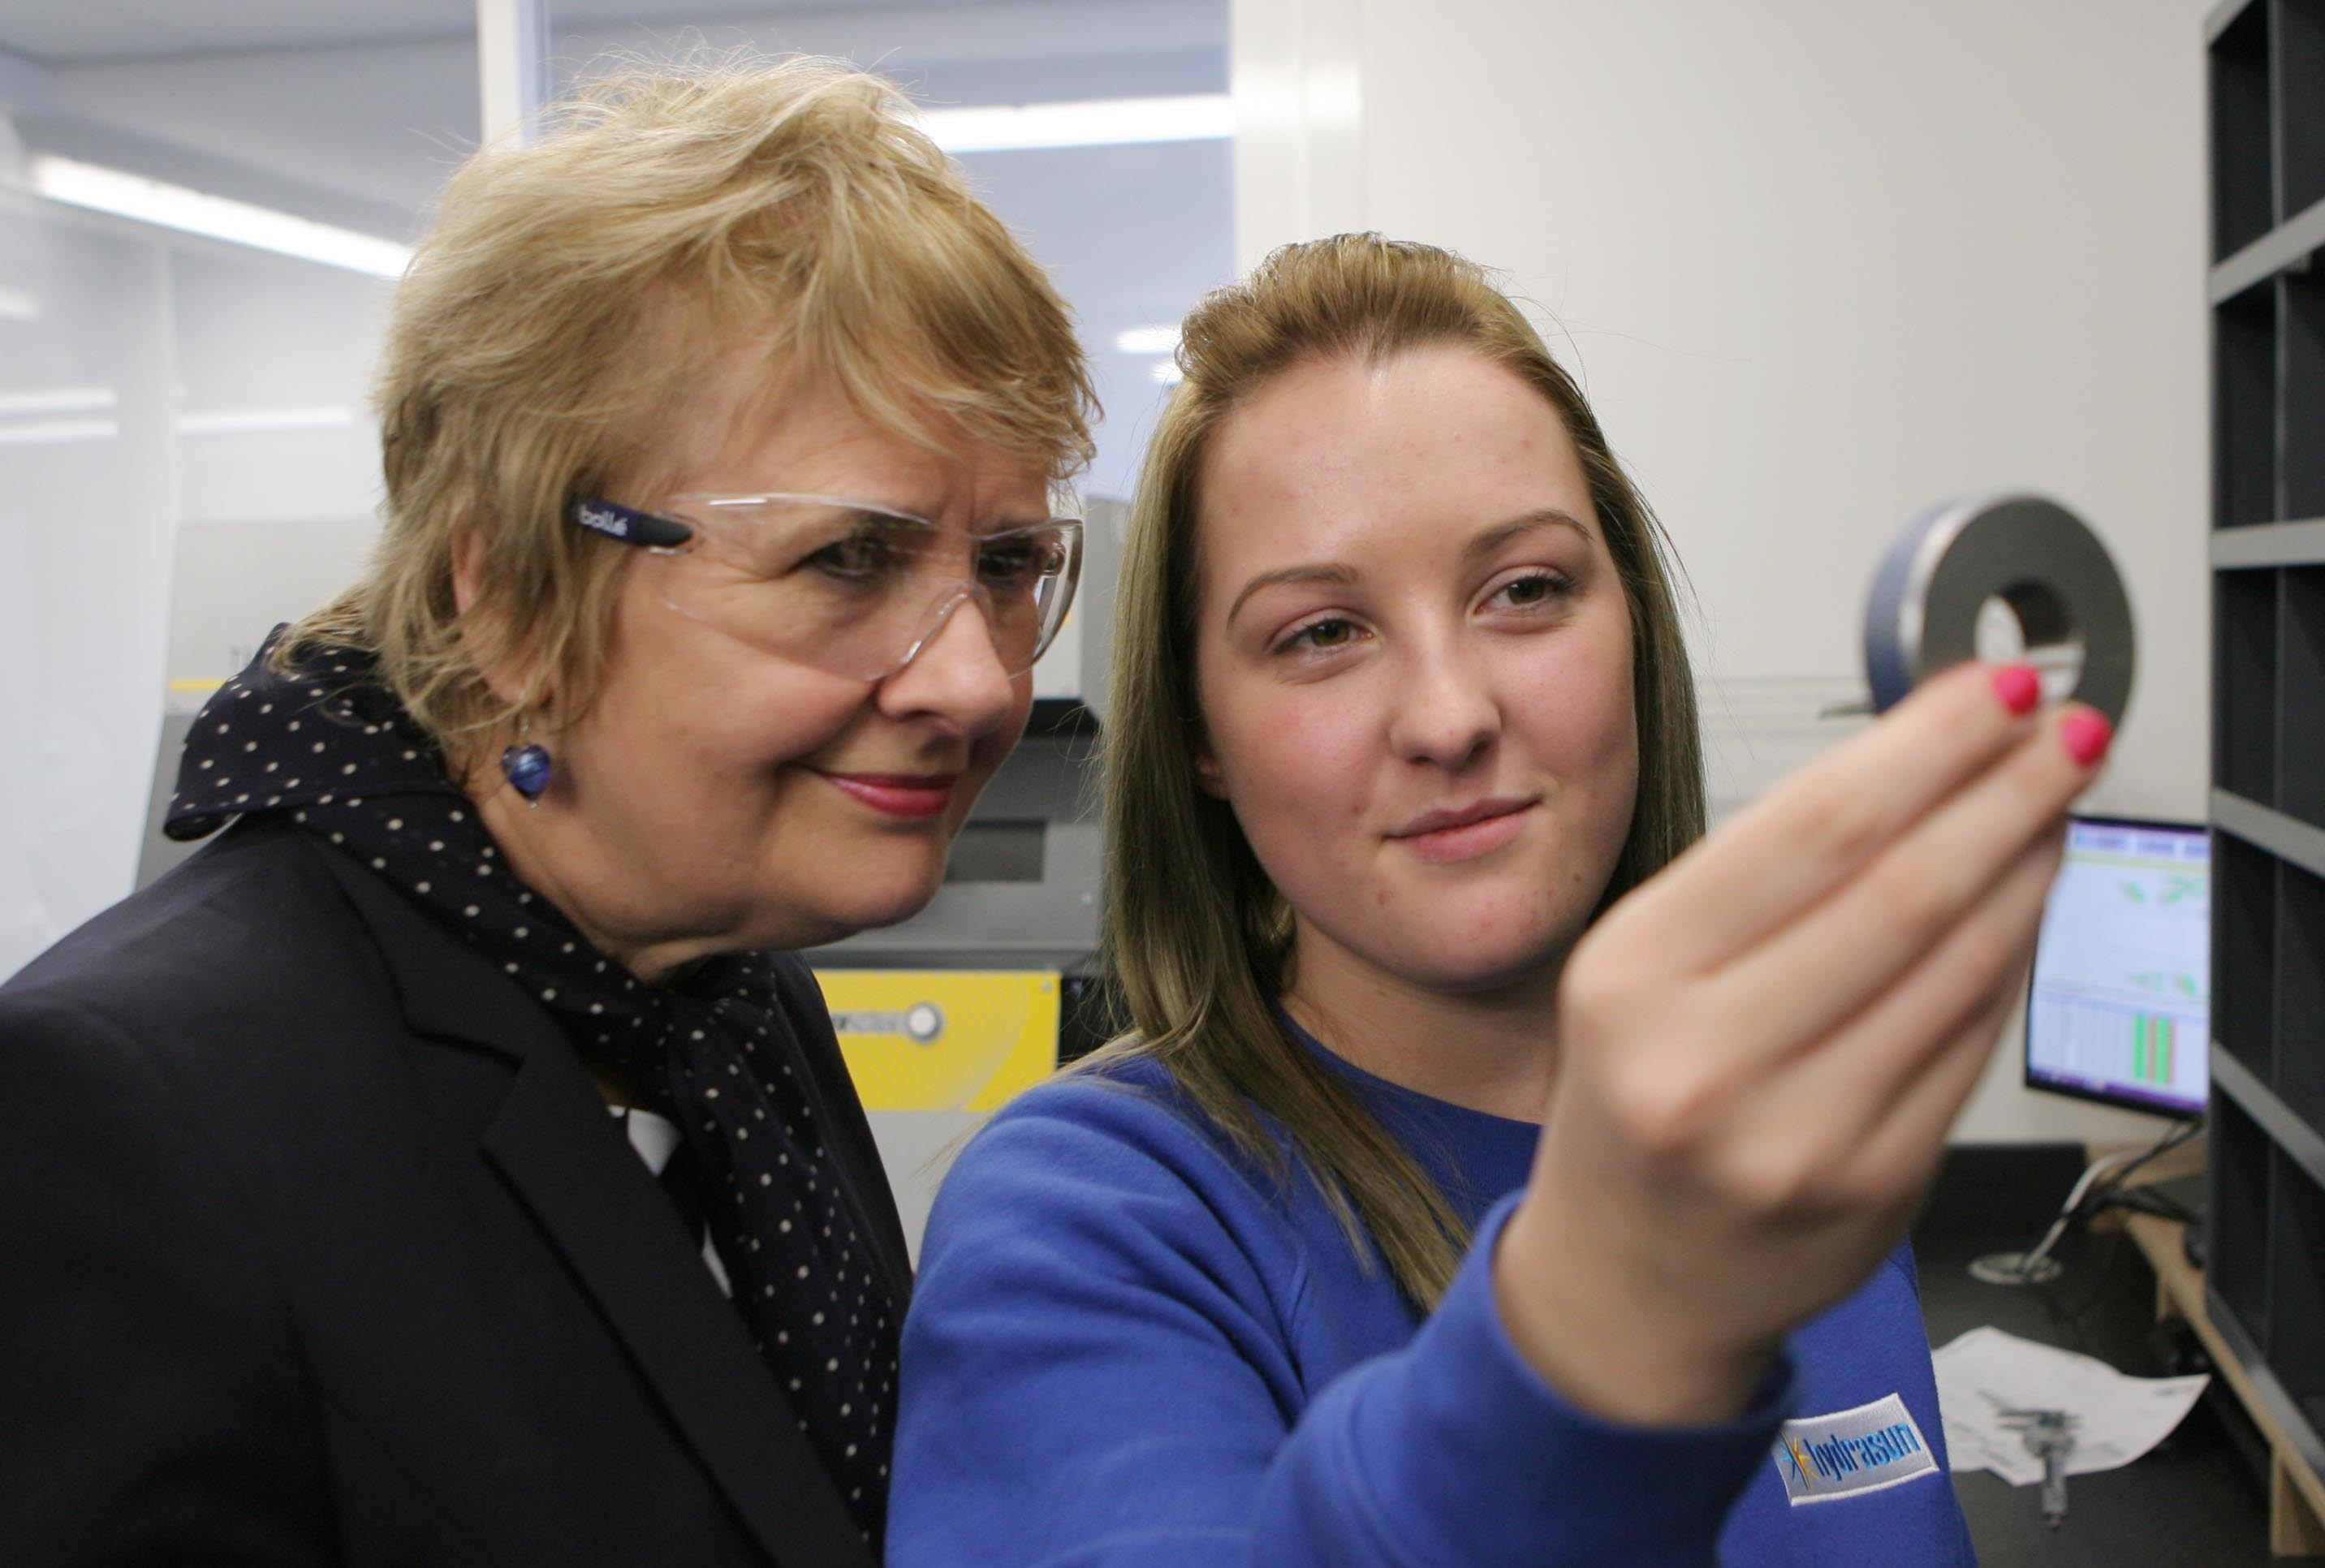 Roseanna Cunningham, left, alongside Hydrasun inspection trainee Megan Grant